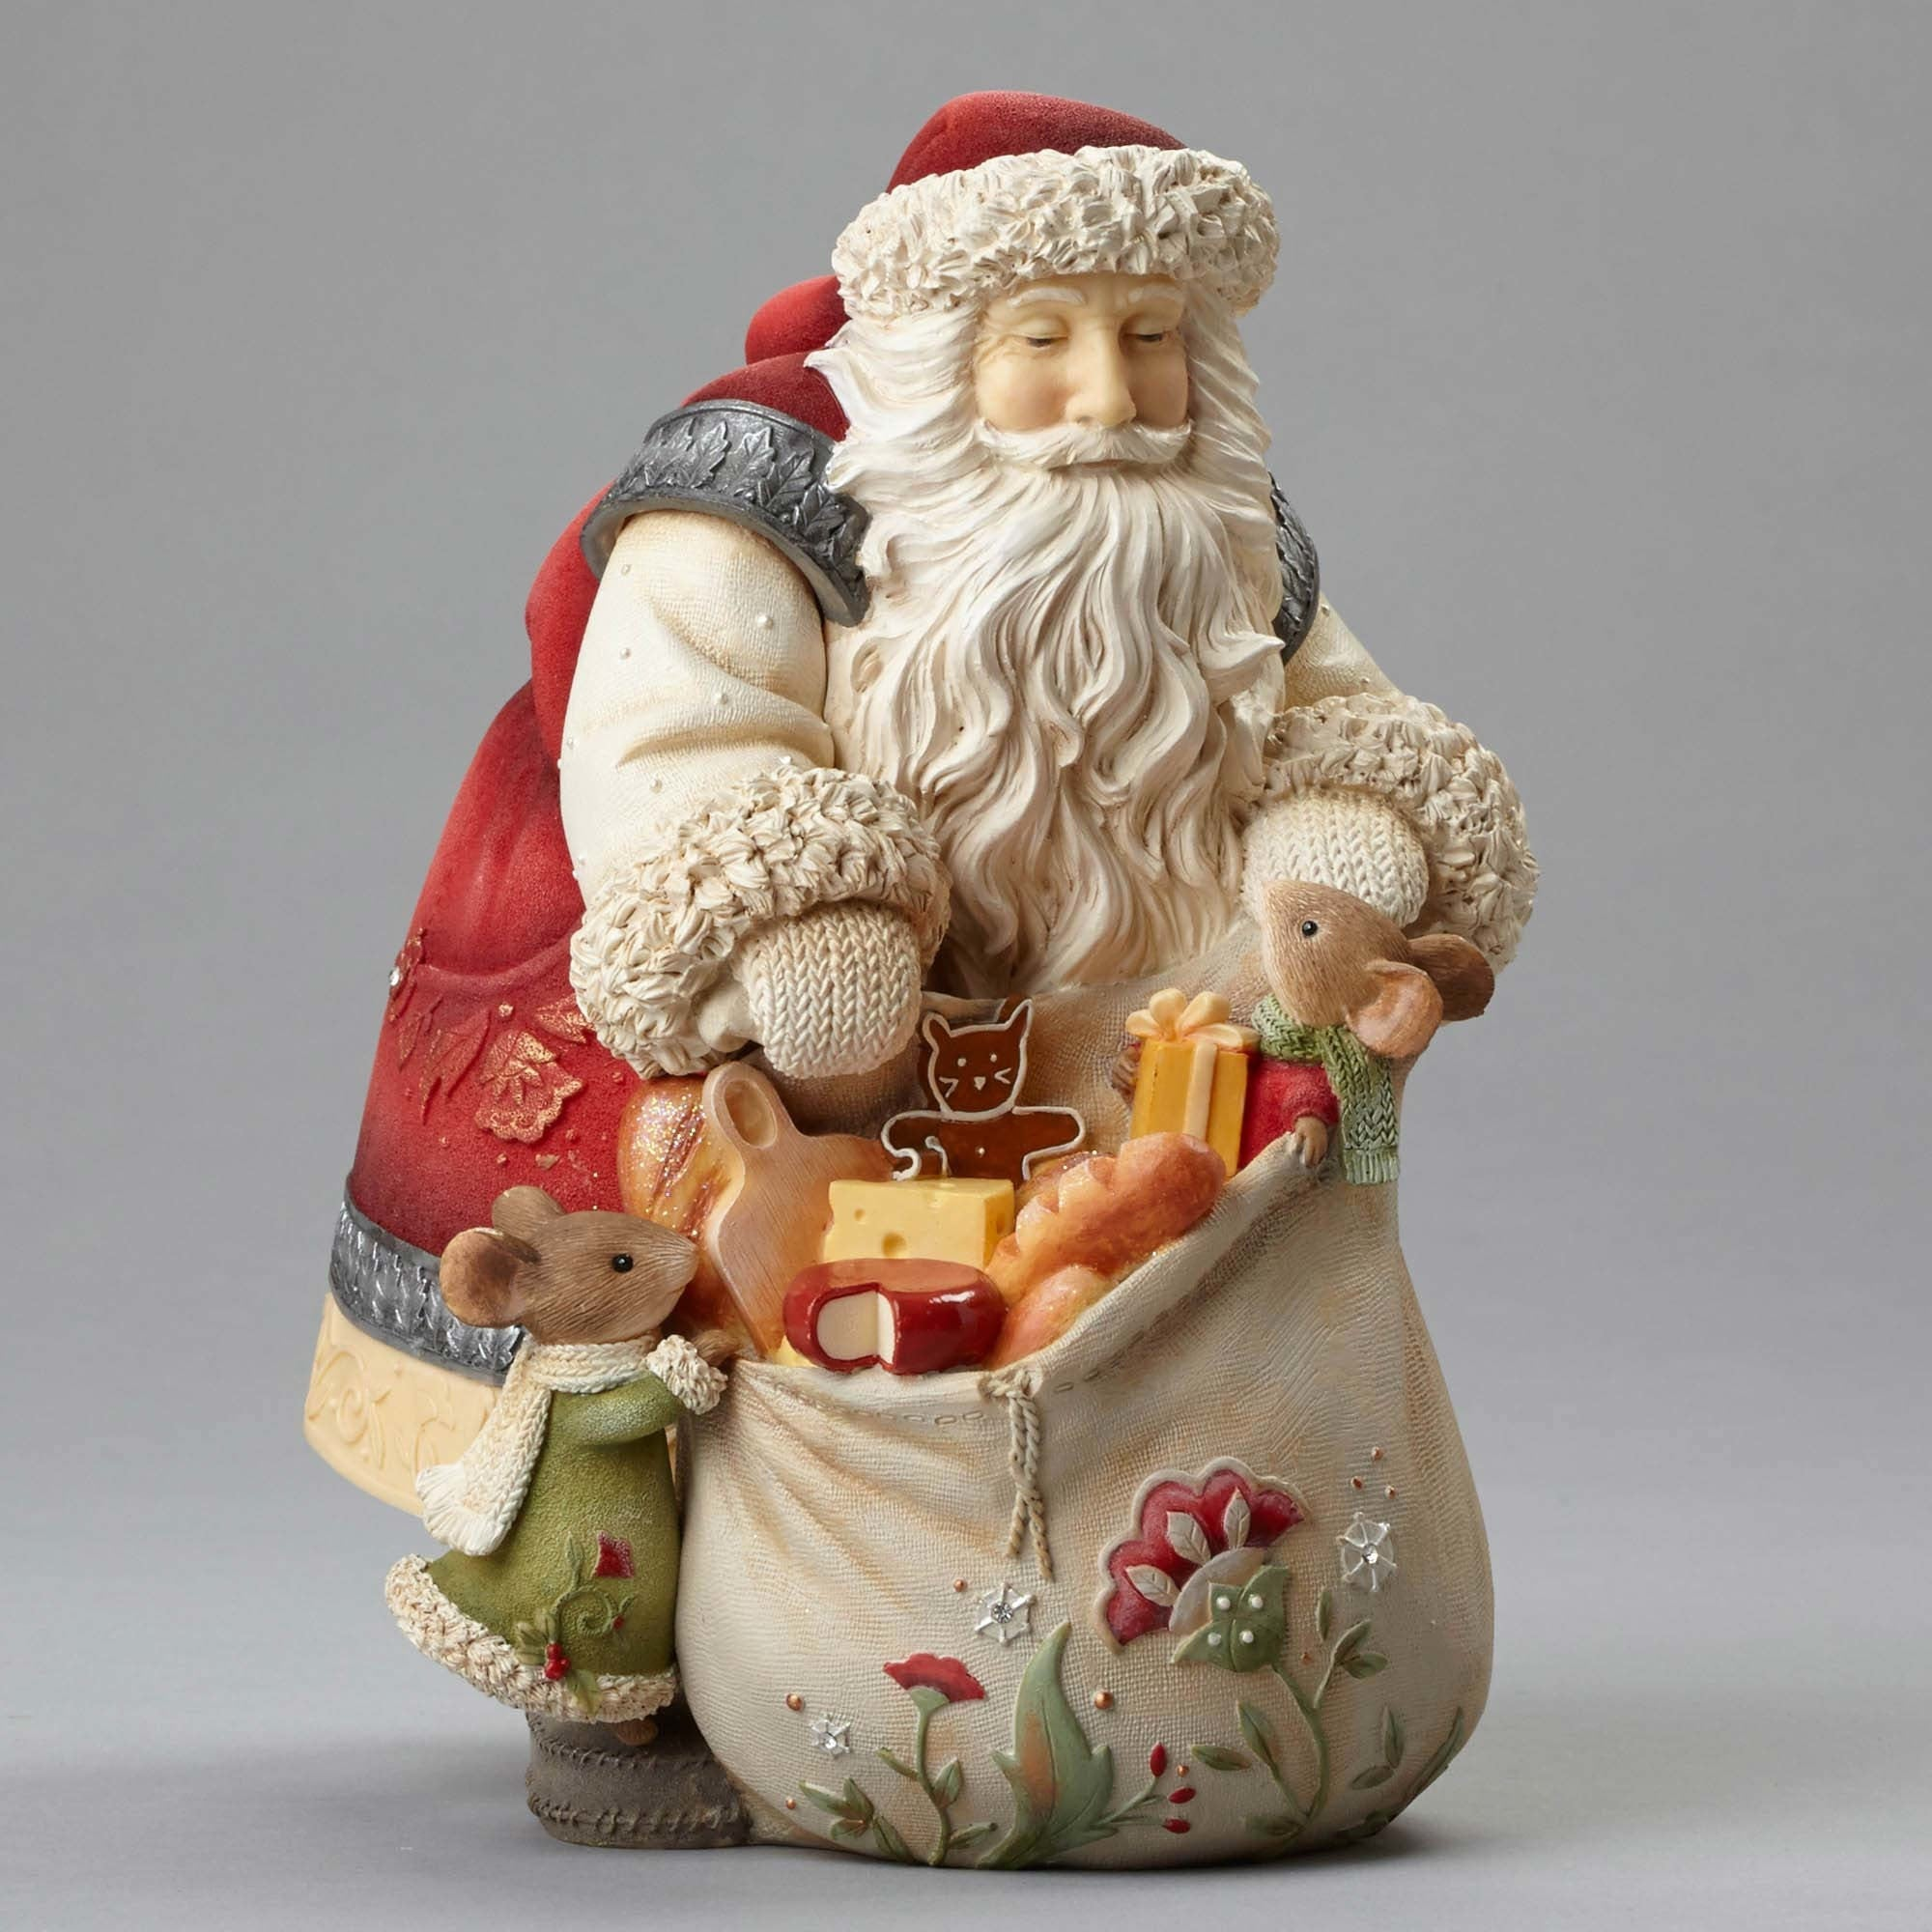 Santa with Mice Gifts Figurine by Heart of Christmas